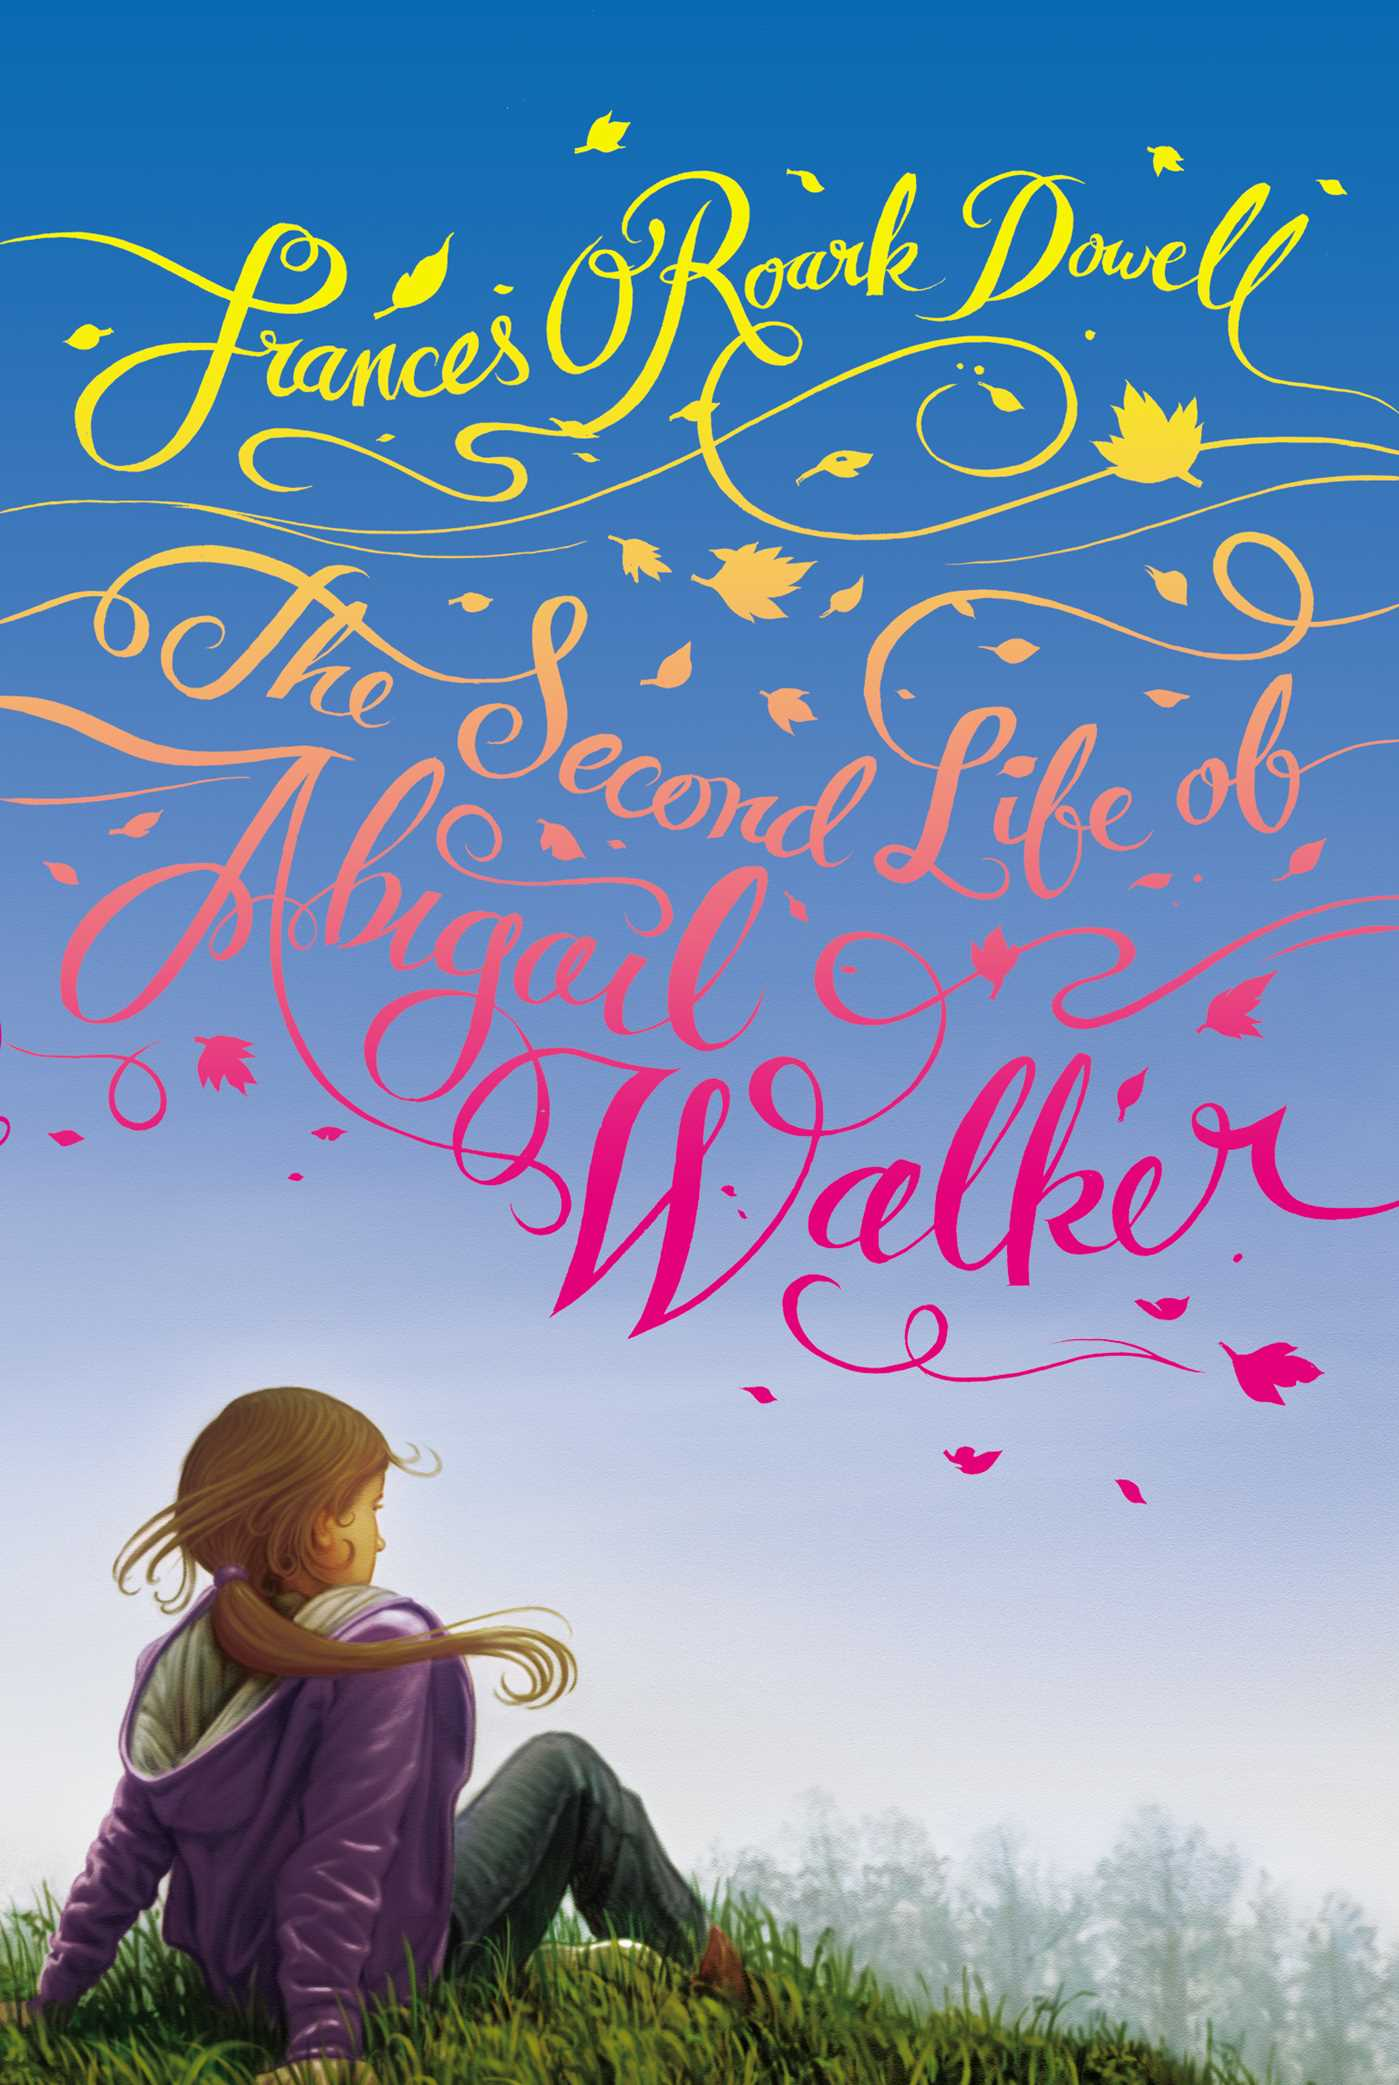 The-second-life-of-abigail-walker-9781442405950_hr